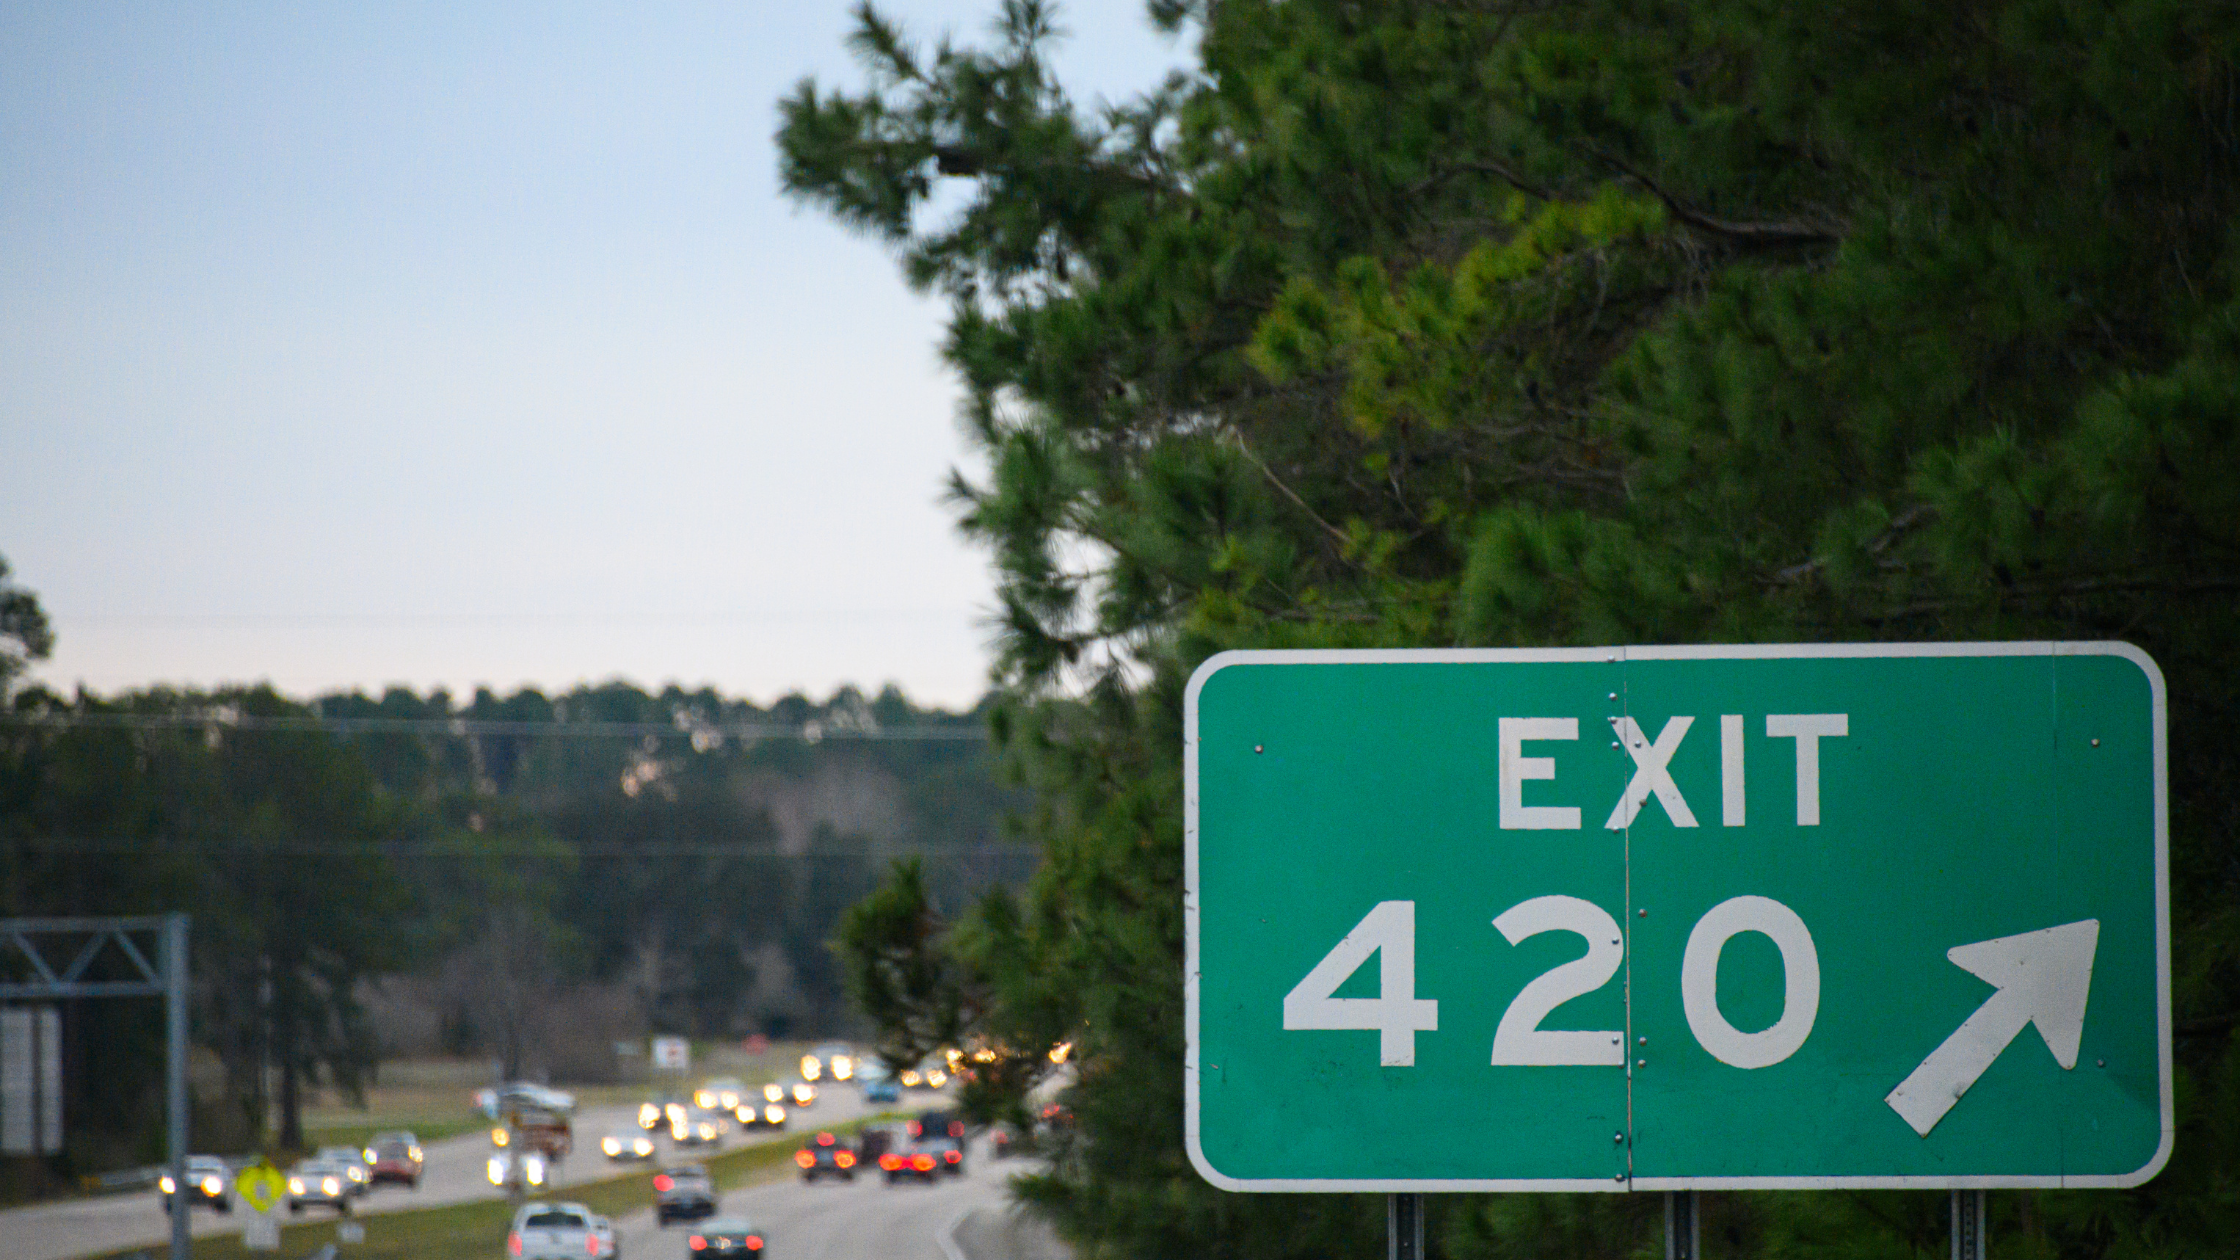 Exit 420 street sign